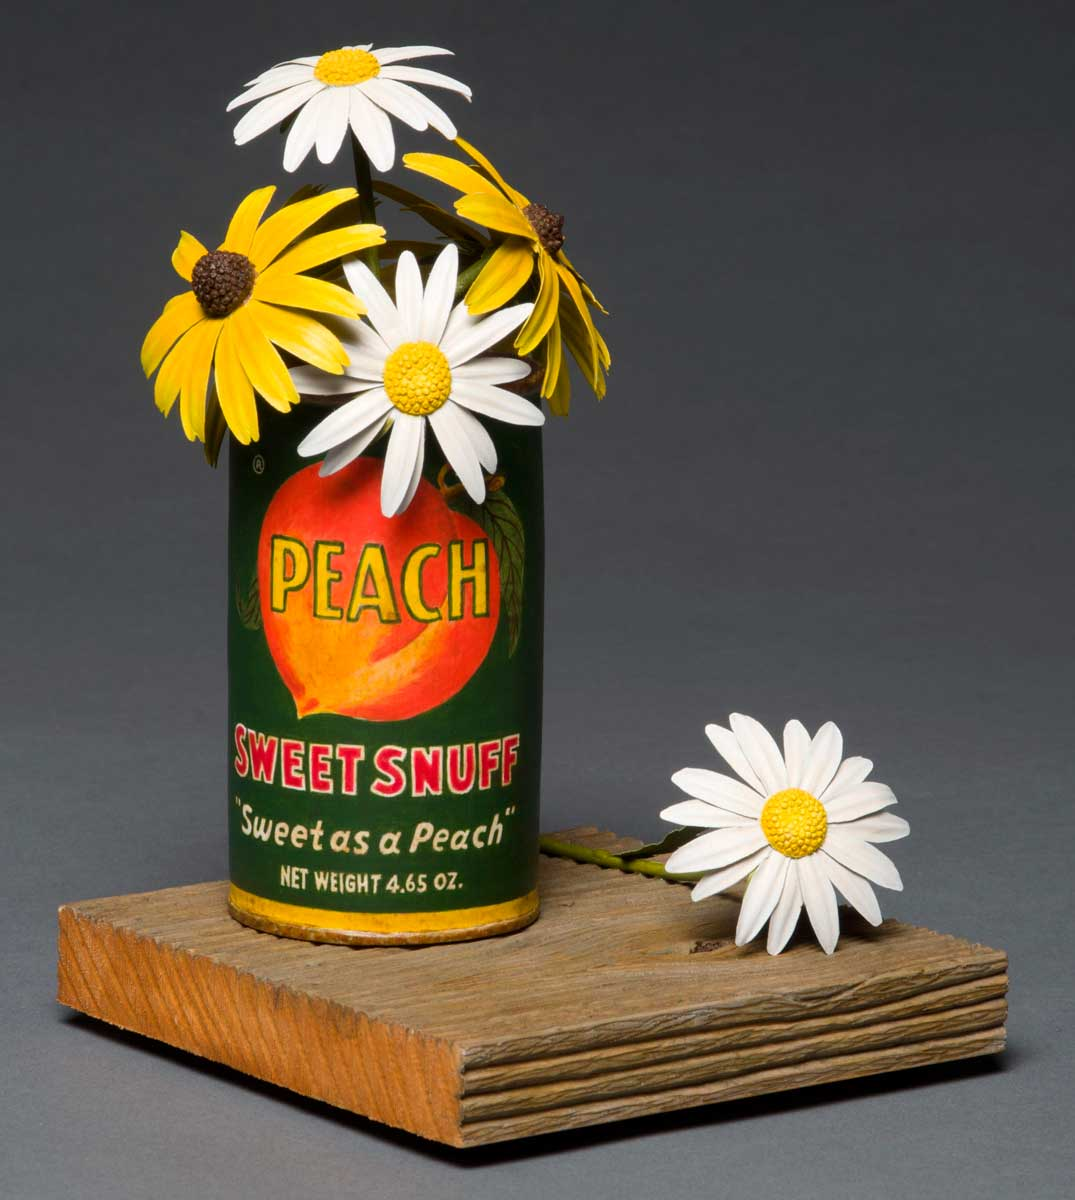 photo of Pete Lupo's Artwork - Front View of Wildflowers in a Peach snuff can